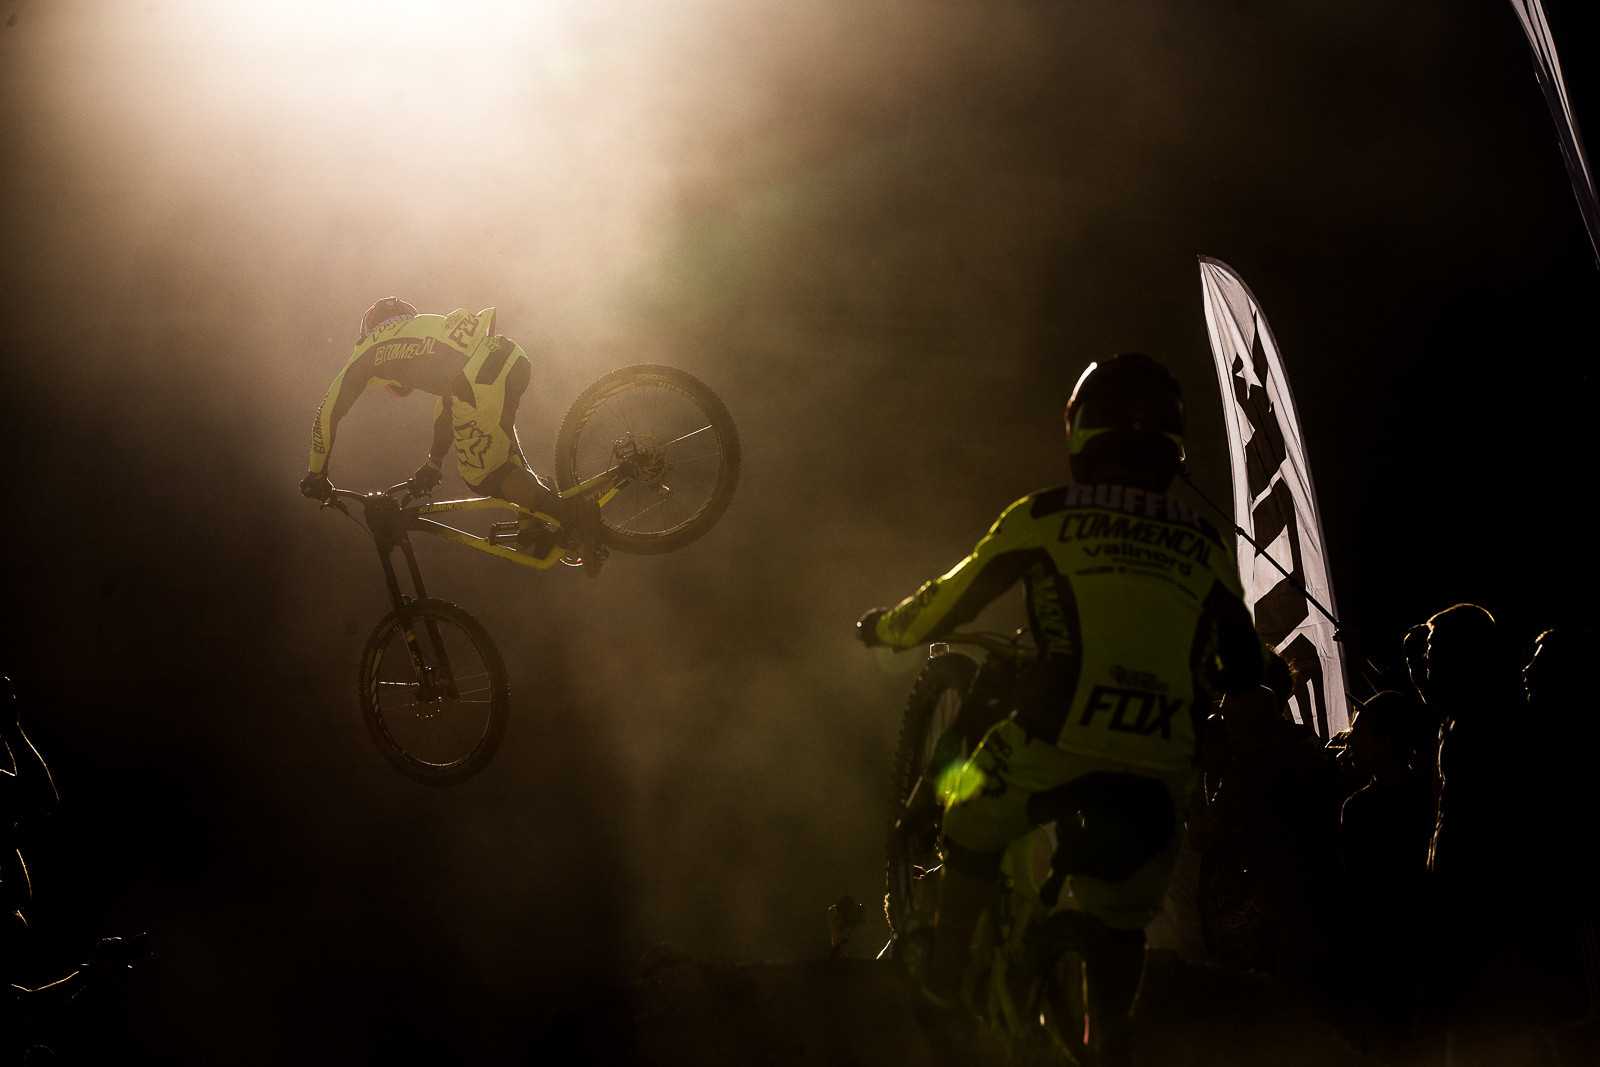 Commencal / Vallnord, Whip Off European Champs, Crankworx L2A - Whip Off European Champs, Crankworx L2A - Mountain Biking Pictures - Vital MTB